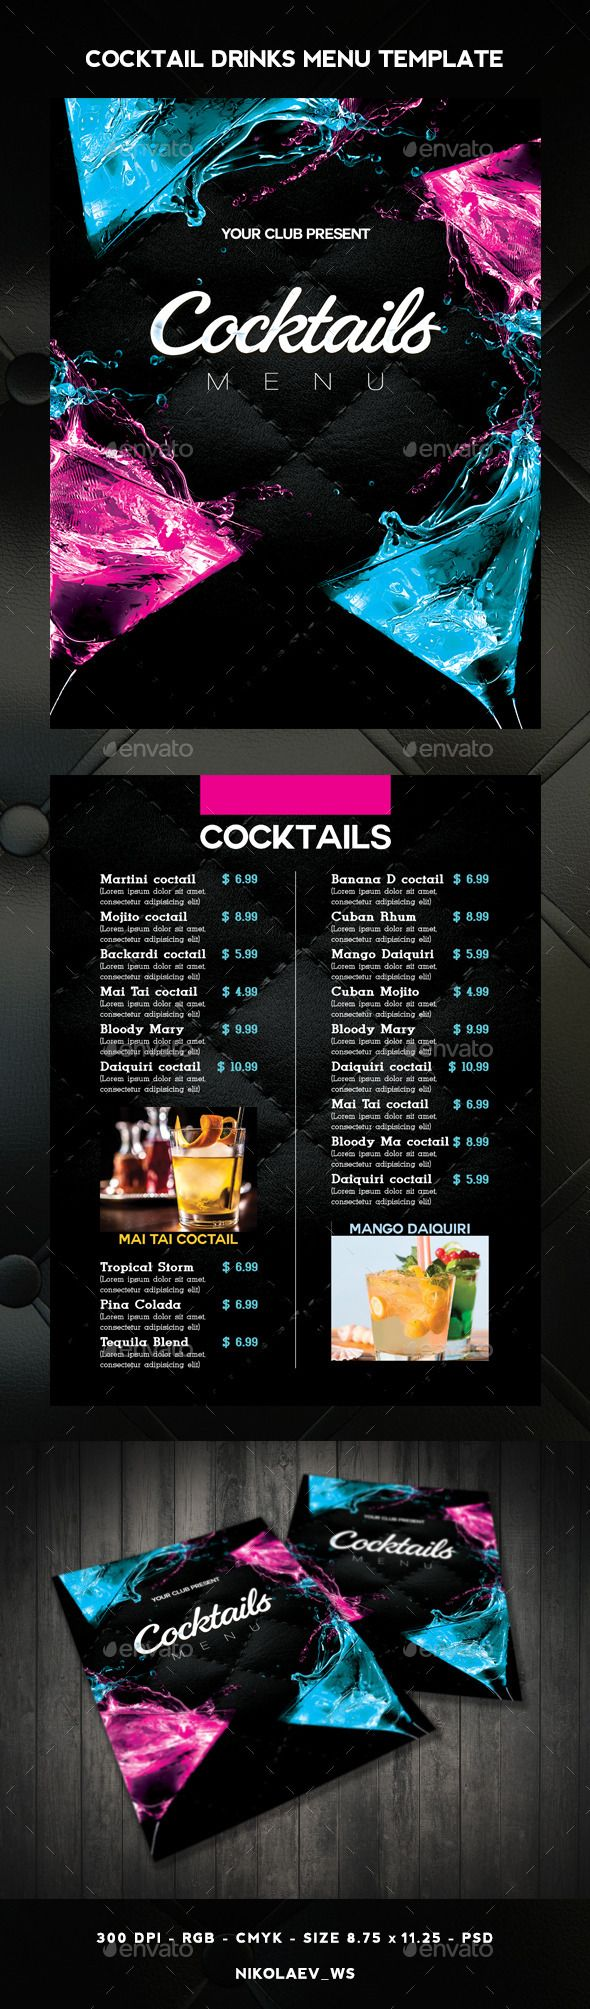 Best Bar Images On   Drink Menu Food Menu Template